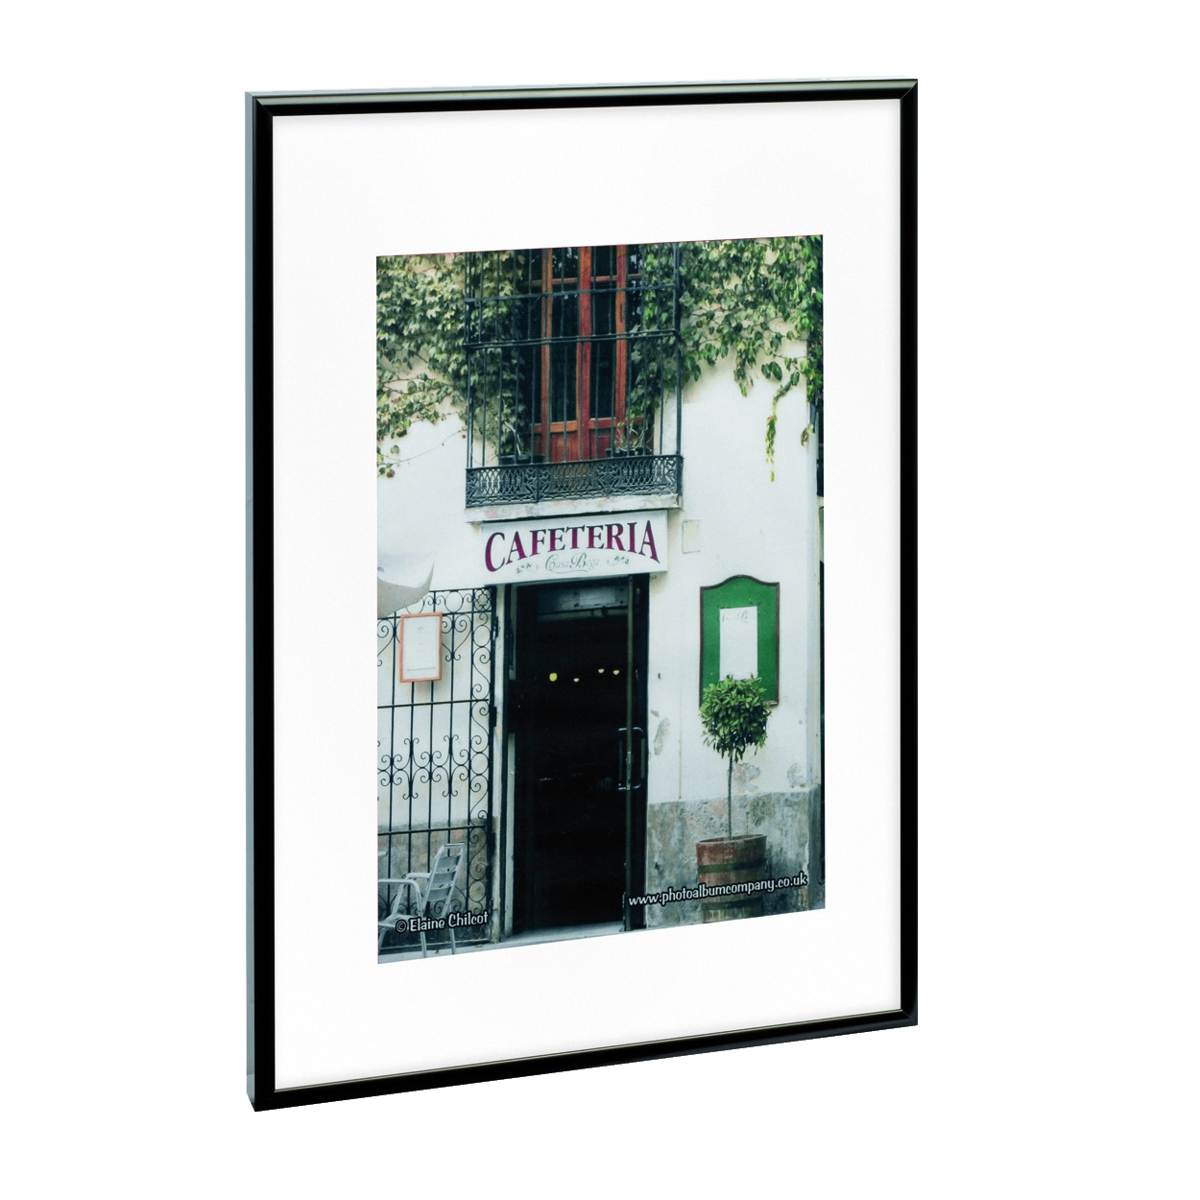 UK Black A3 Poster Frame at Contemporary Heaven